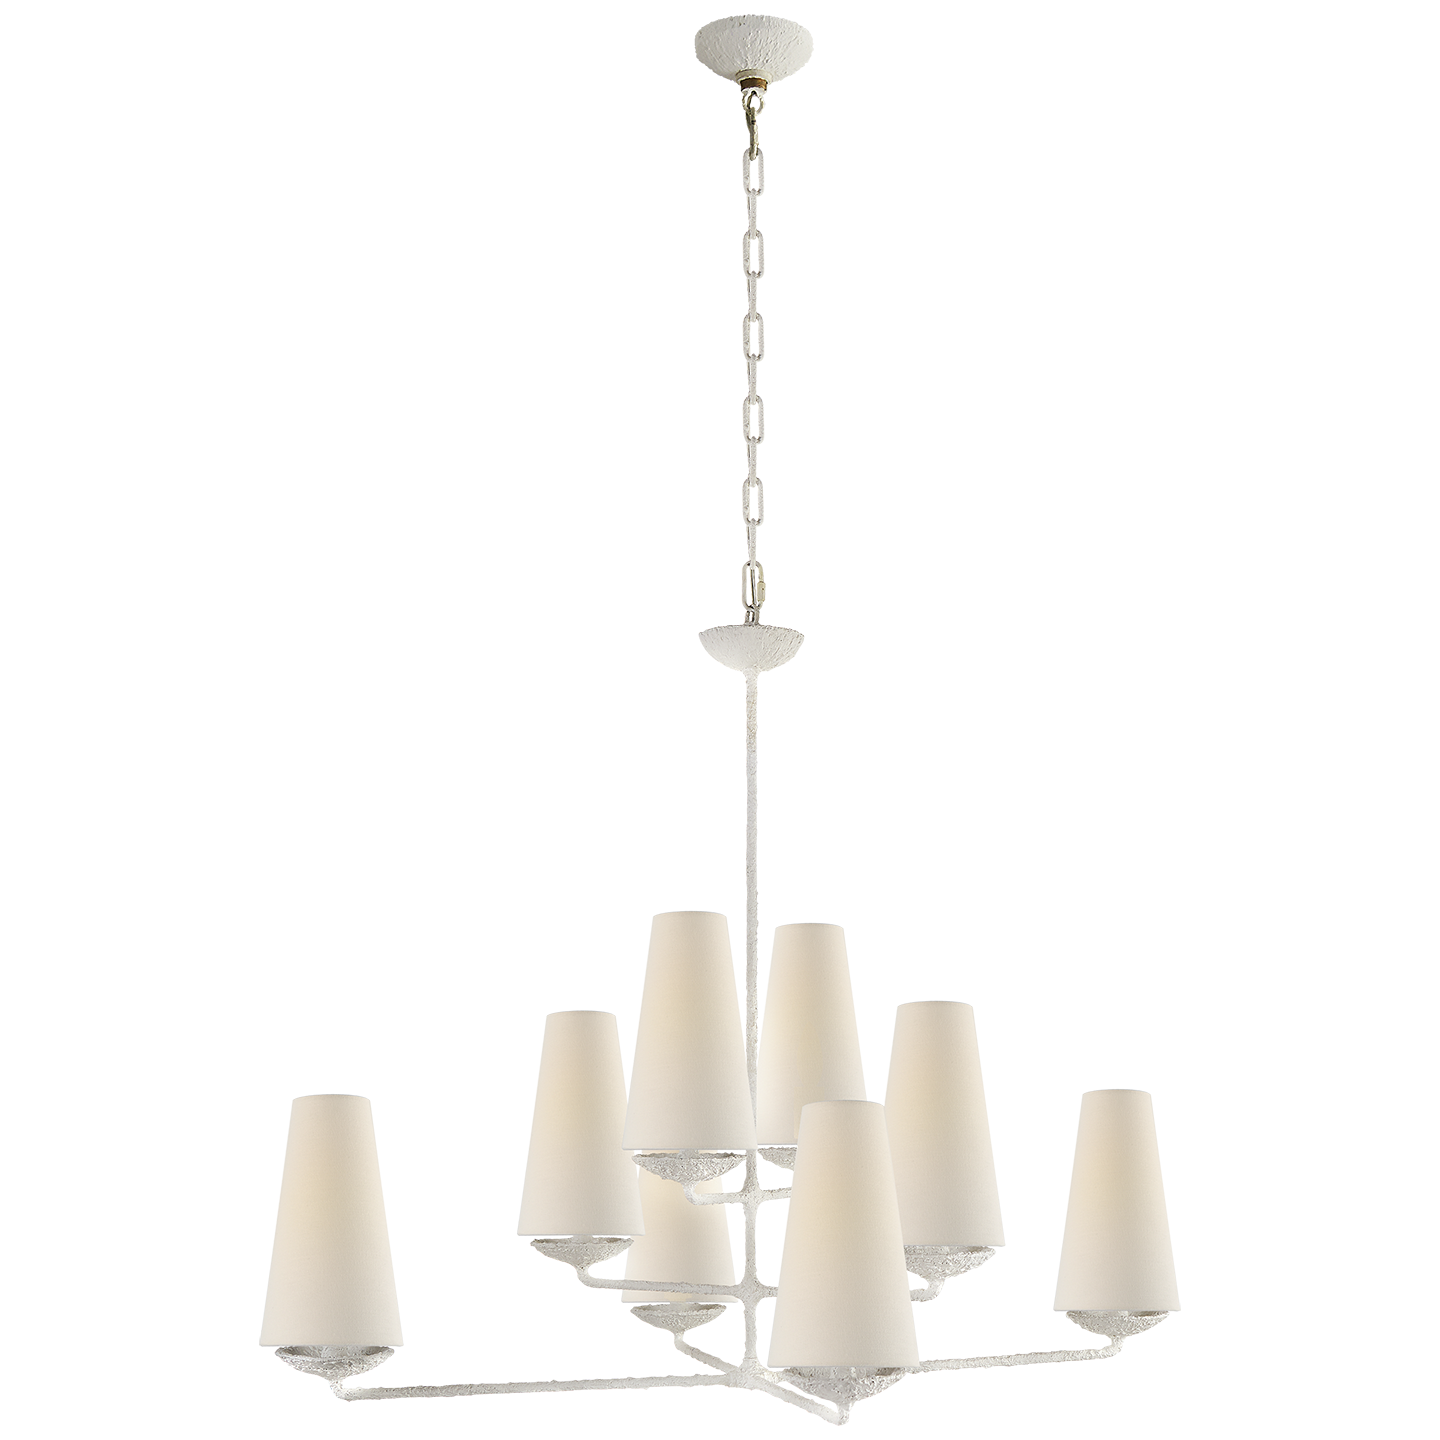 Fontaine large offset chandelier in plaster white with linen shades chandelier in plaster white with linen shades item arn designer aerin fixture height width canopy round socket 8 candelabra wattage 8 40 b mozeypictures